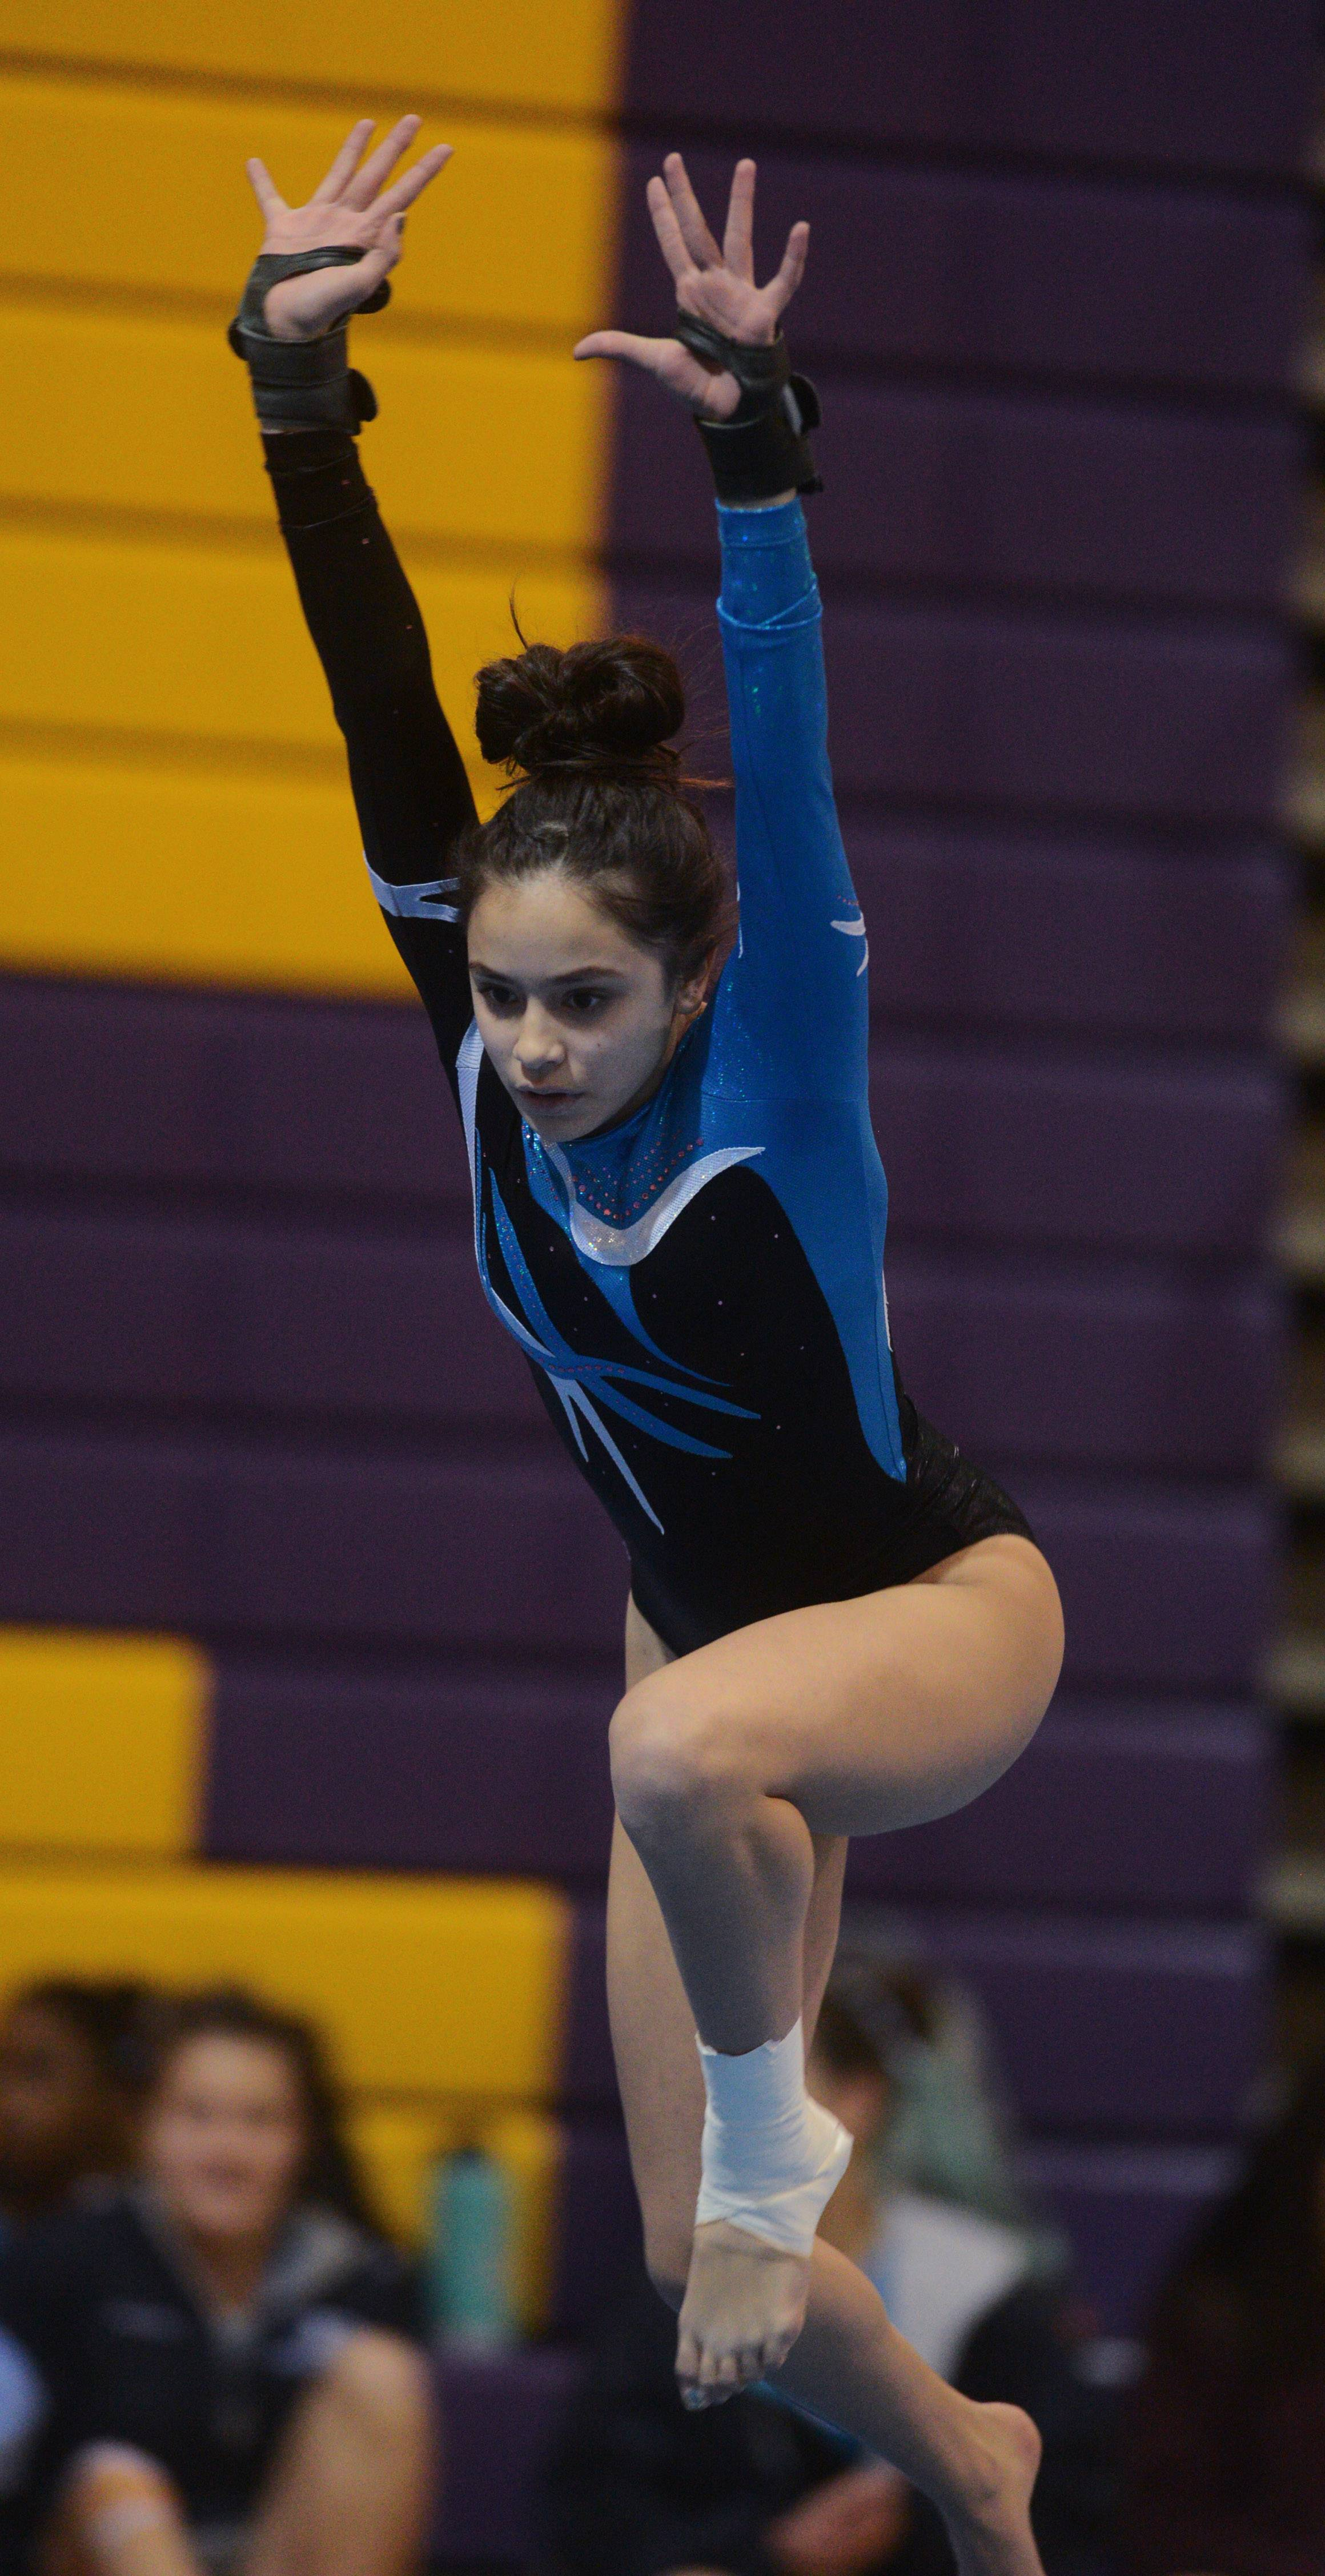 Prospect's Rosie Barros competes on floor exercise during Wednesday's gymnastics meet in Rolling Meadows.